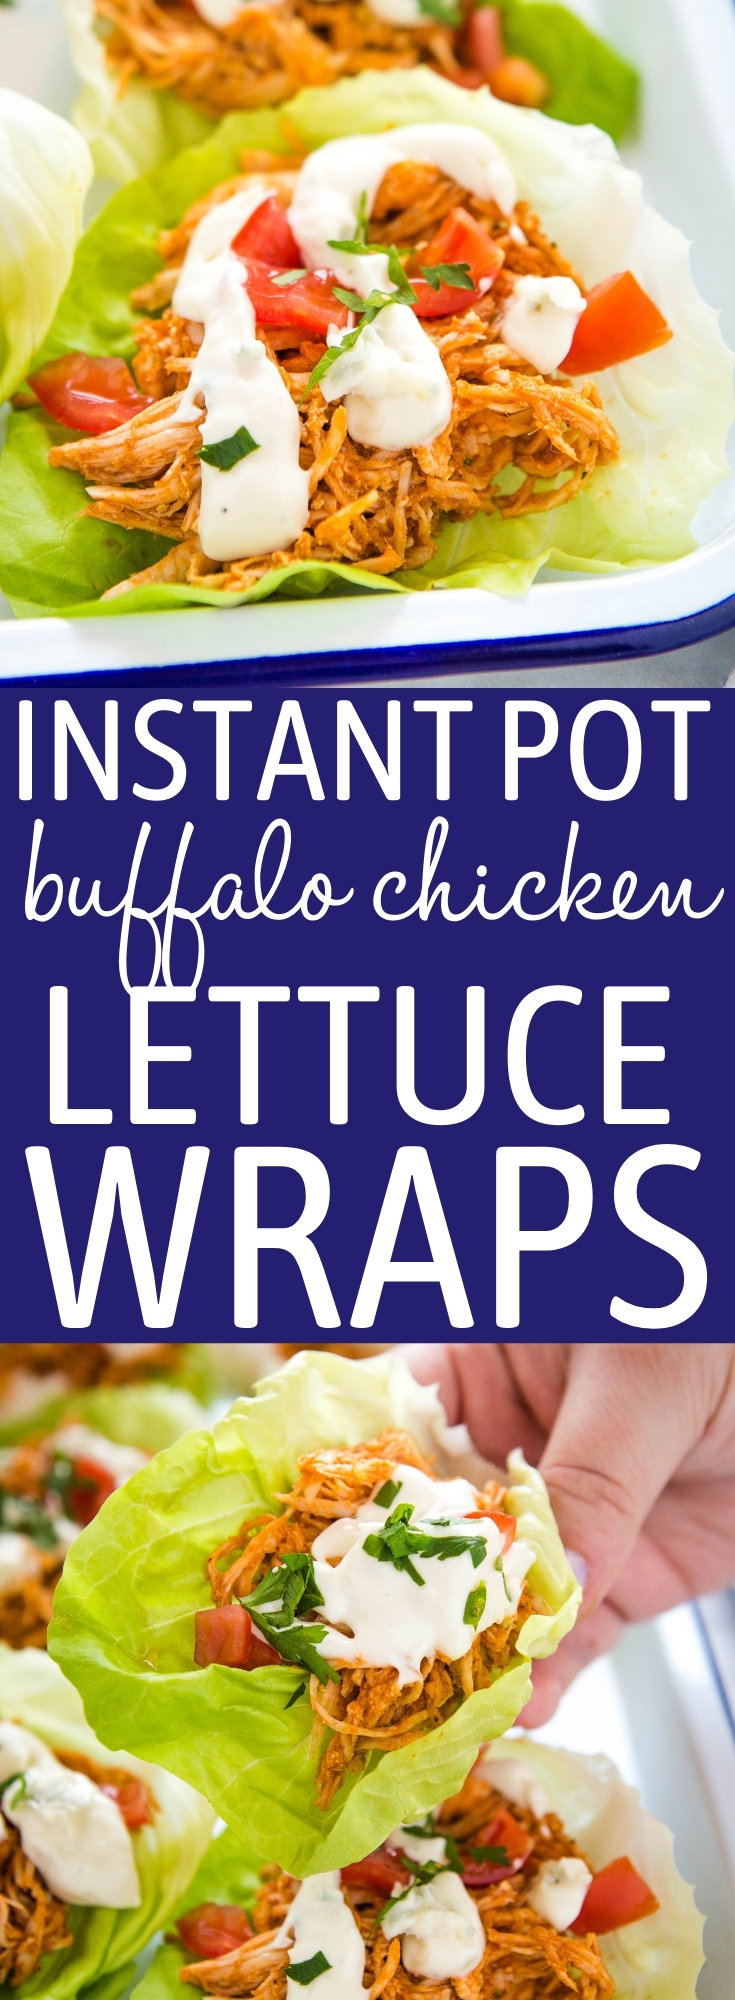 This Instant Pot Buffalo Chicken is easy to make in 20 minutes! It's so juicy and spicy, with the best buffalo flavour! Serve it in tacos or low carb lettuce wraps with blue cheese dressing! Recipe from thebusybaker.ca! #buffalochicken #instantpotbuffalochicken #instantpotchicken #buffalochicken #lowcarbbuffalochicken #buffalochickenlettucewraps #keto via @busybakerblog